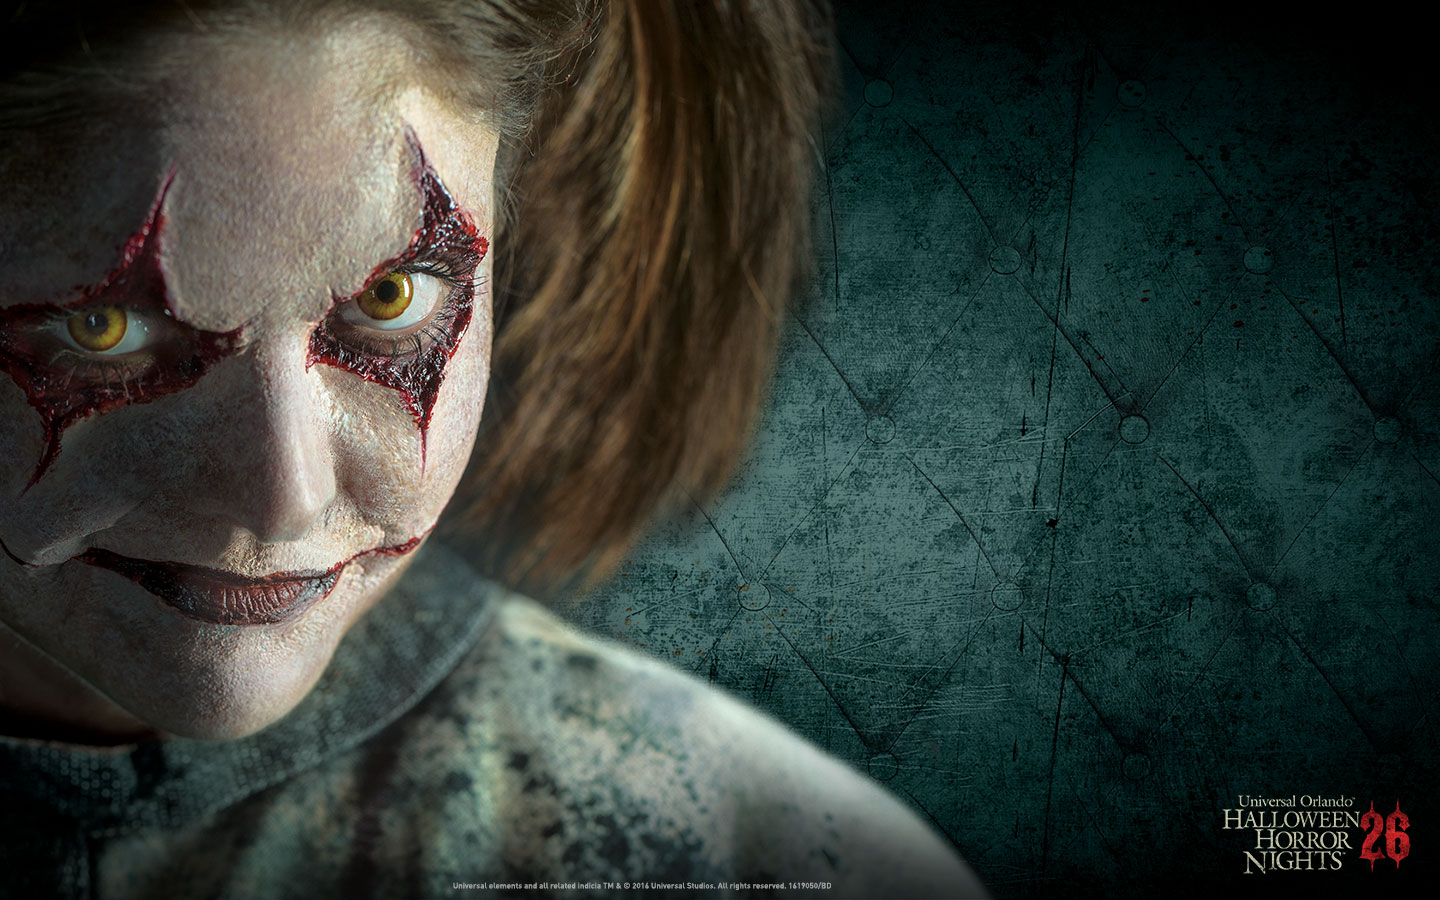 Beautiful Girl Wallpaper Pictures Download Universal Orlando Close Up Download Exclusive Halloween